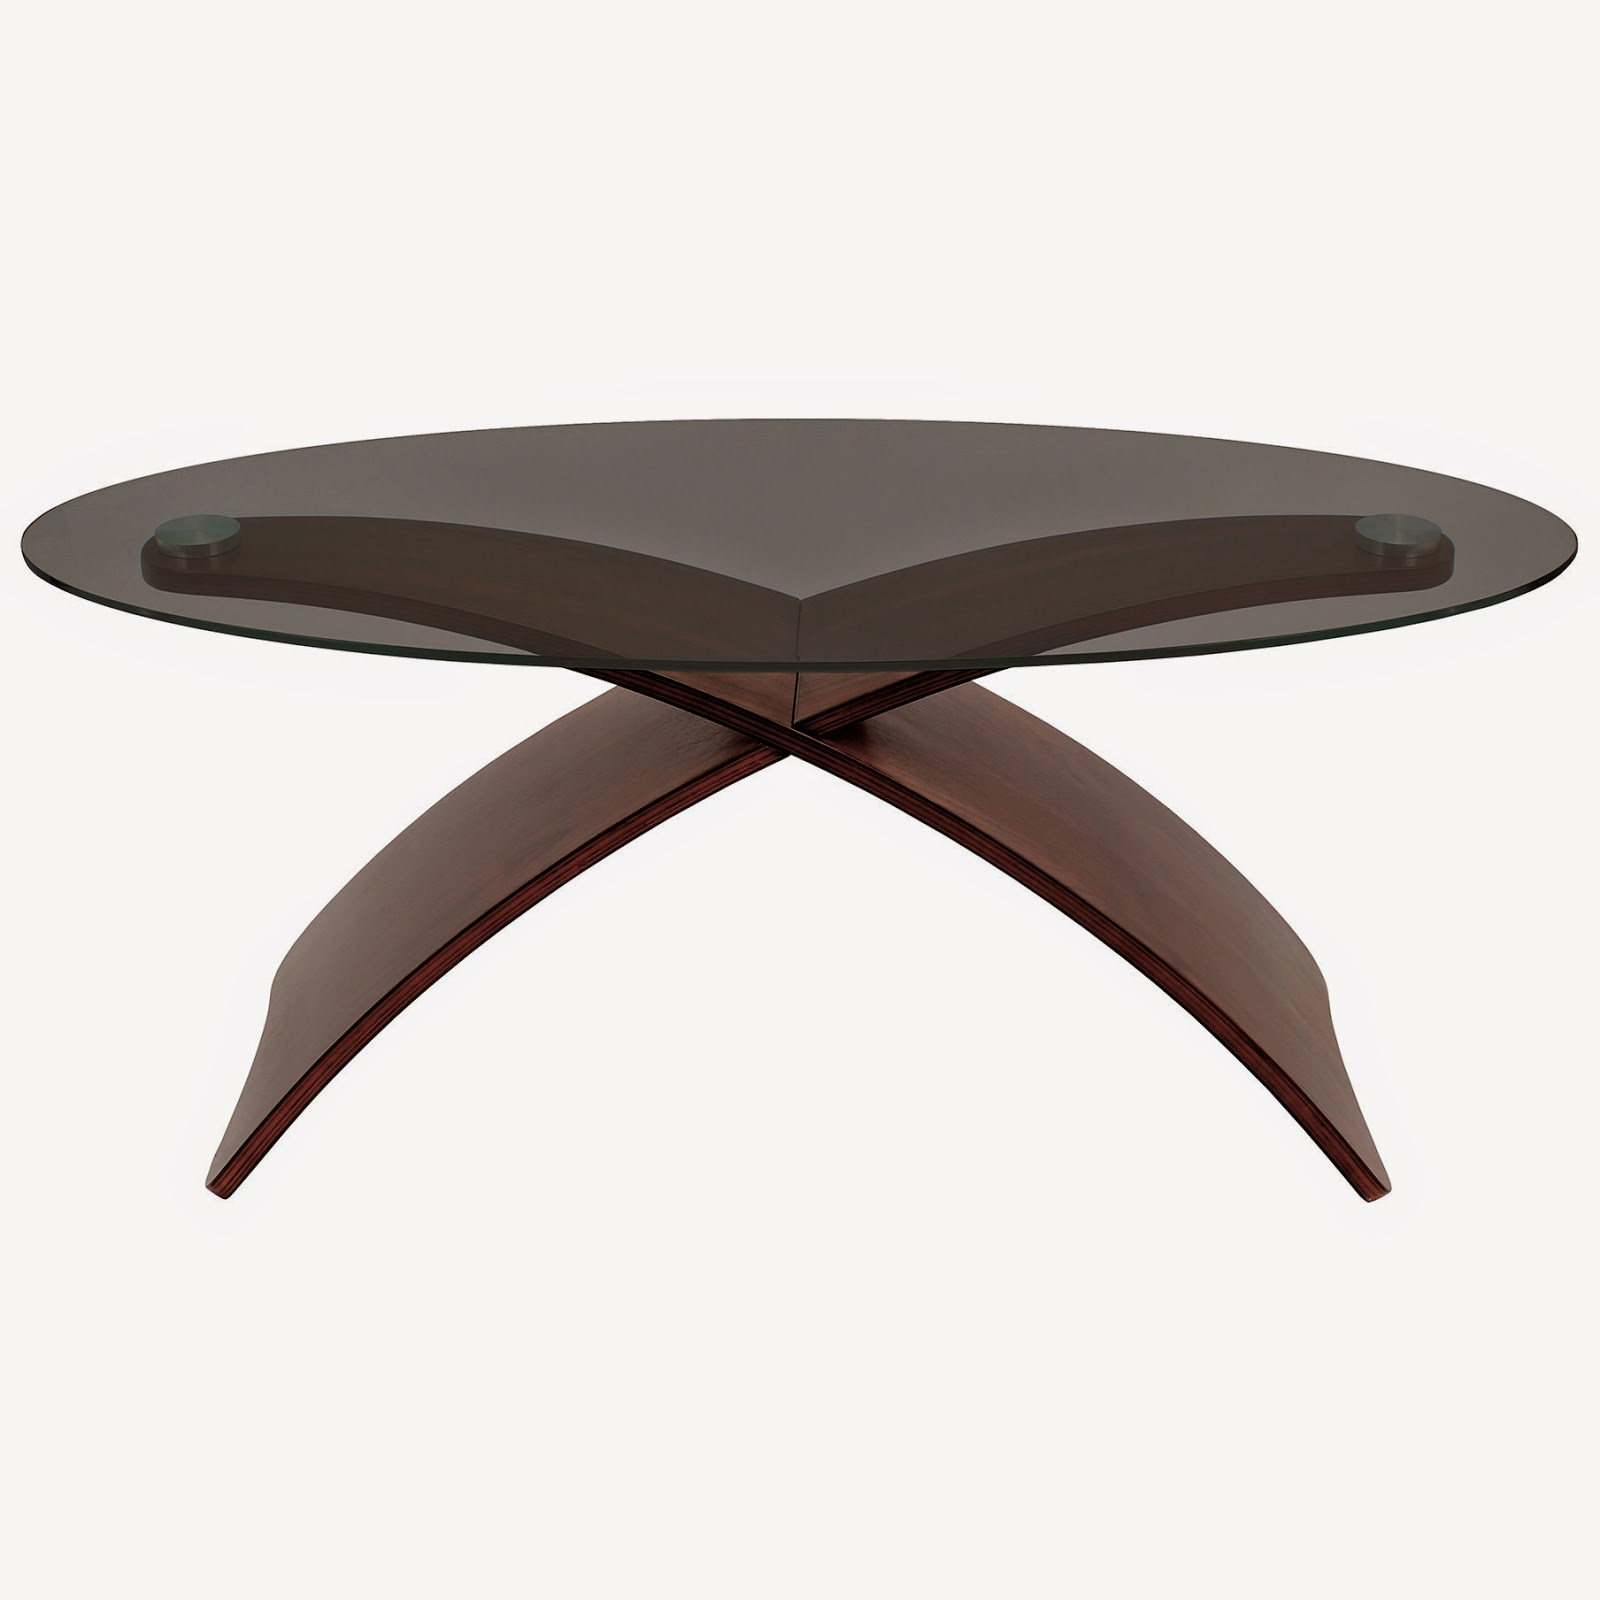 25 elegant oval coffee table designs made of glass and wood for Contemporary oval coffee tables